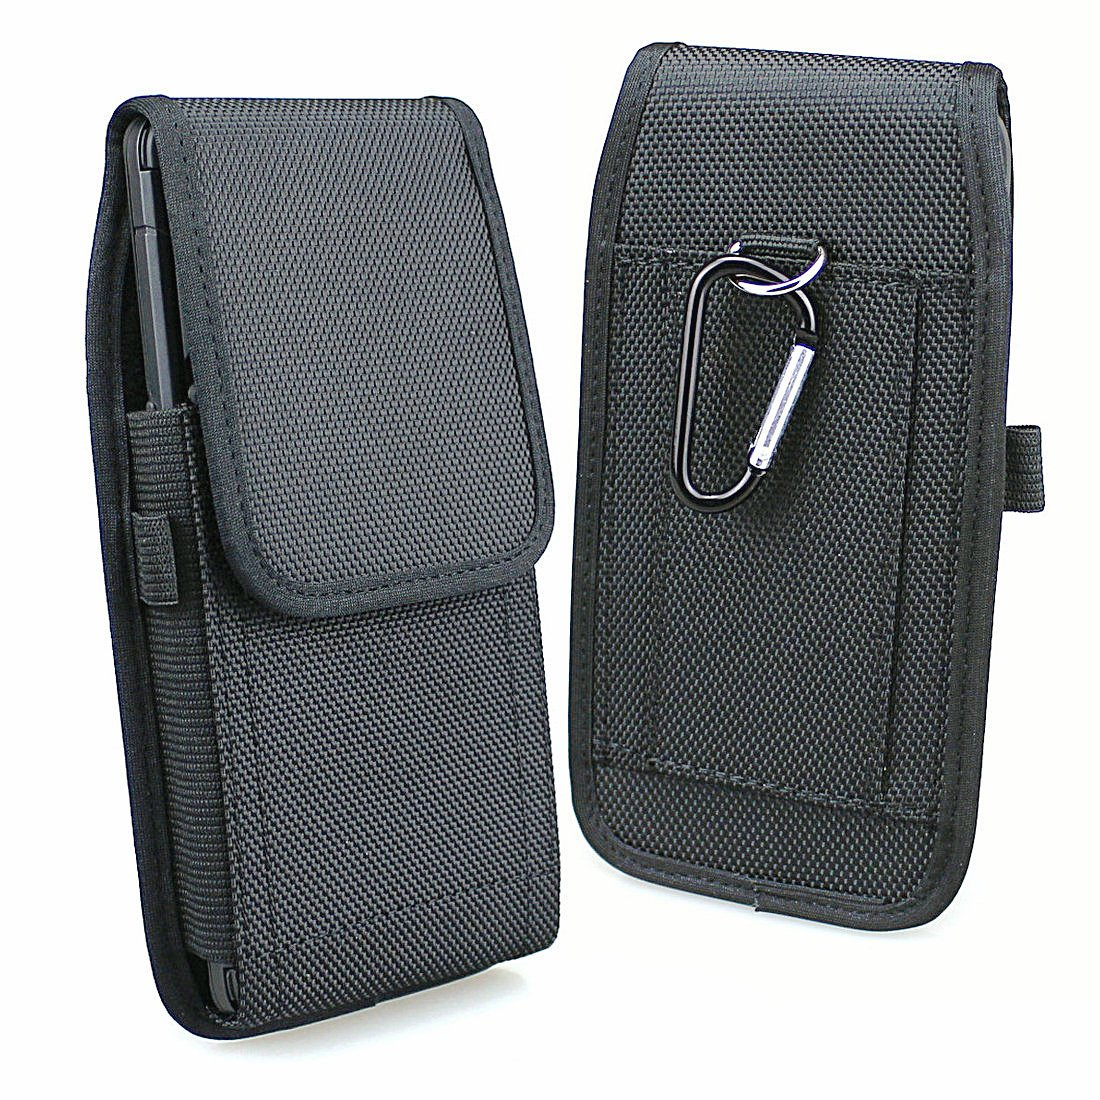 Aubaddy Vertical Nylon Phone Holster Pouch with Belt Loops for Samsung Galaxy Note 9, Note 8, Galaxy A9 Star, A9 Star Lite, S8 Plus, S9 Plus - Fit with a Slim Case (Black)